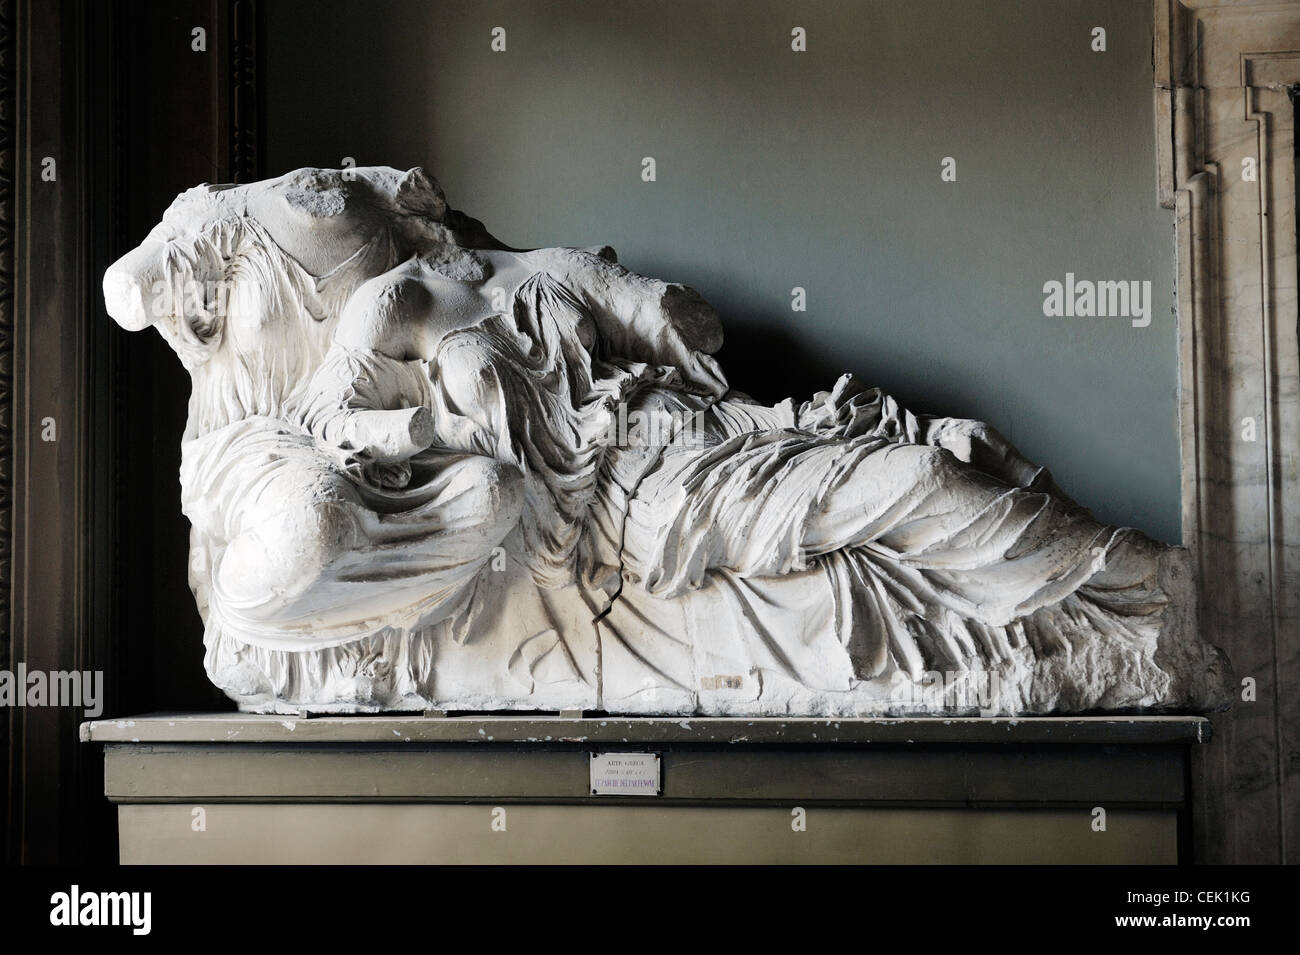 Copied from Athens Parthenon east pediment in local Carrara marble. Rocca Castello museum, Carrara, Italy. Diona - Stock Image